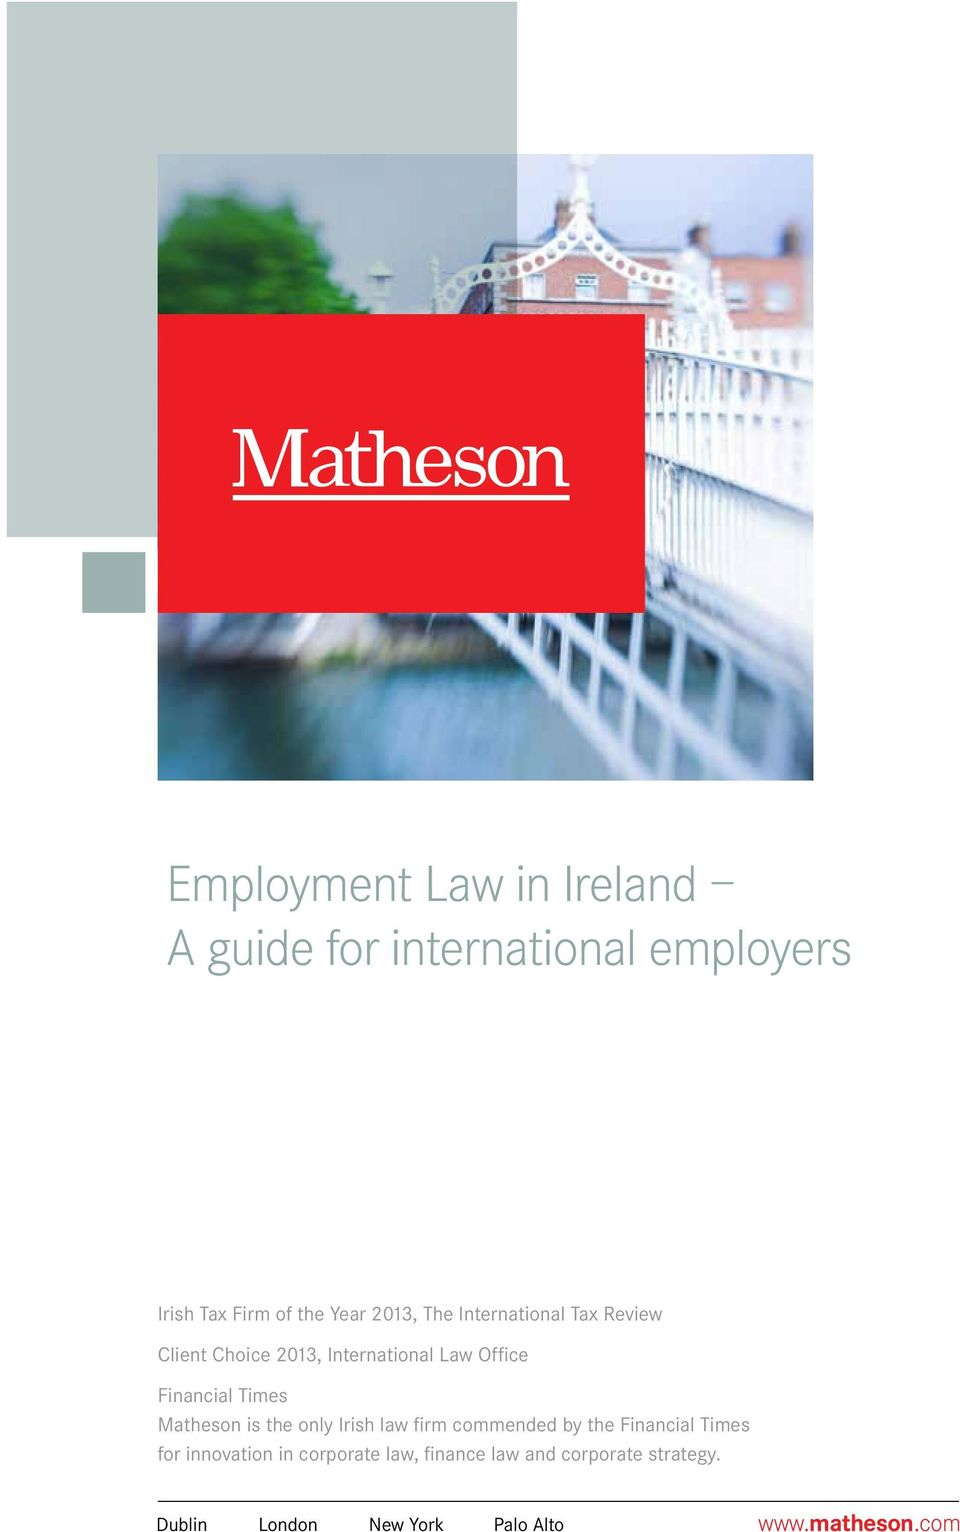 Financial Times Matheson is the only Irish law firm commended by the Financial Times for